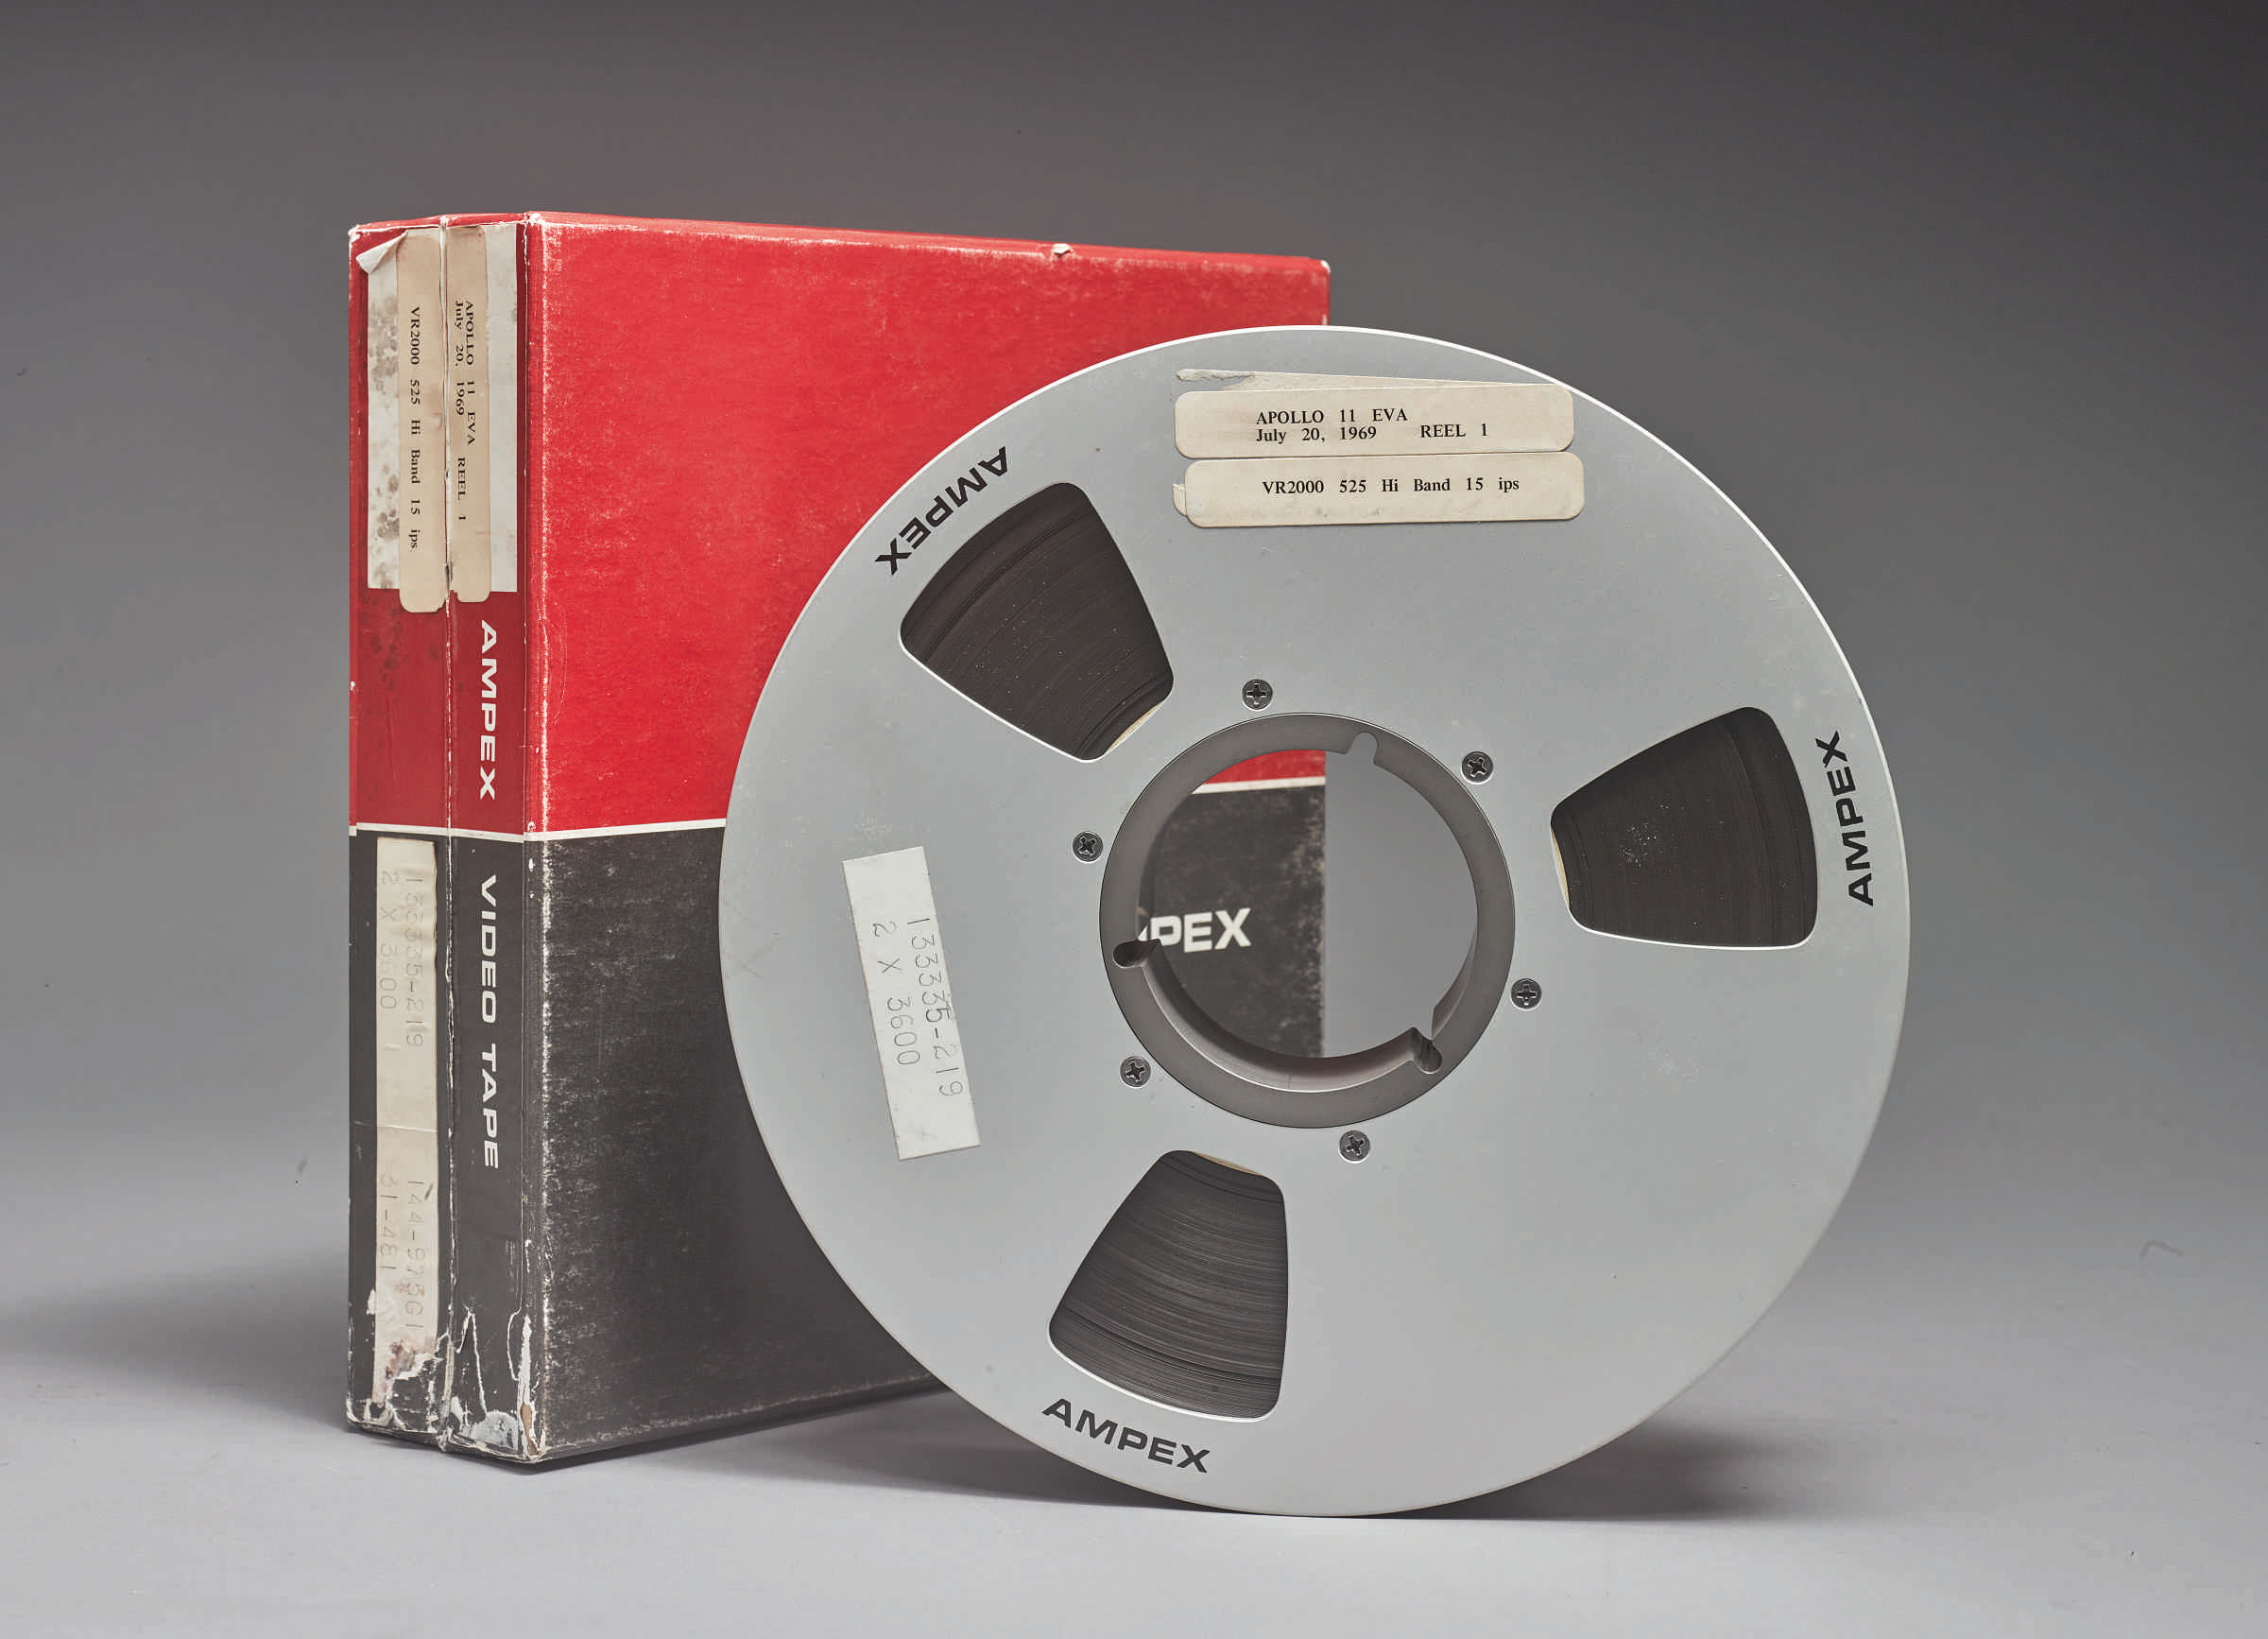 Apollo 11 Tapes Reel 1